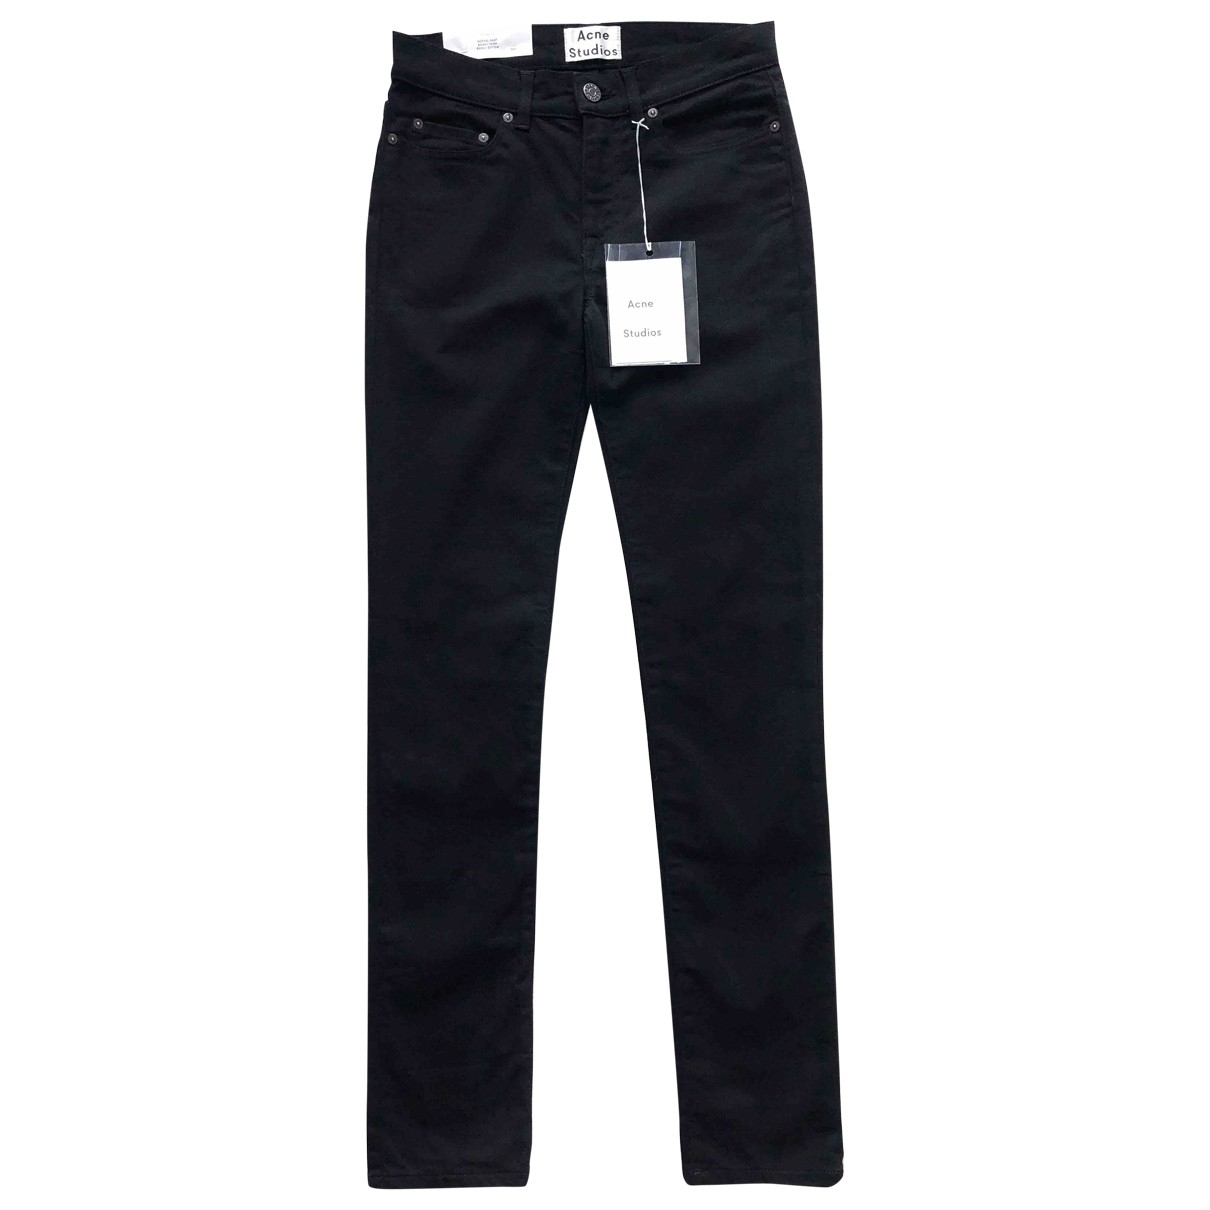 Acne Studios \N Black Cotton - elasthane Jeans for Women 28 US